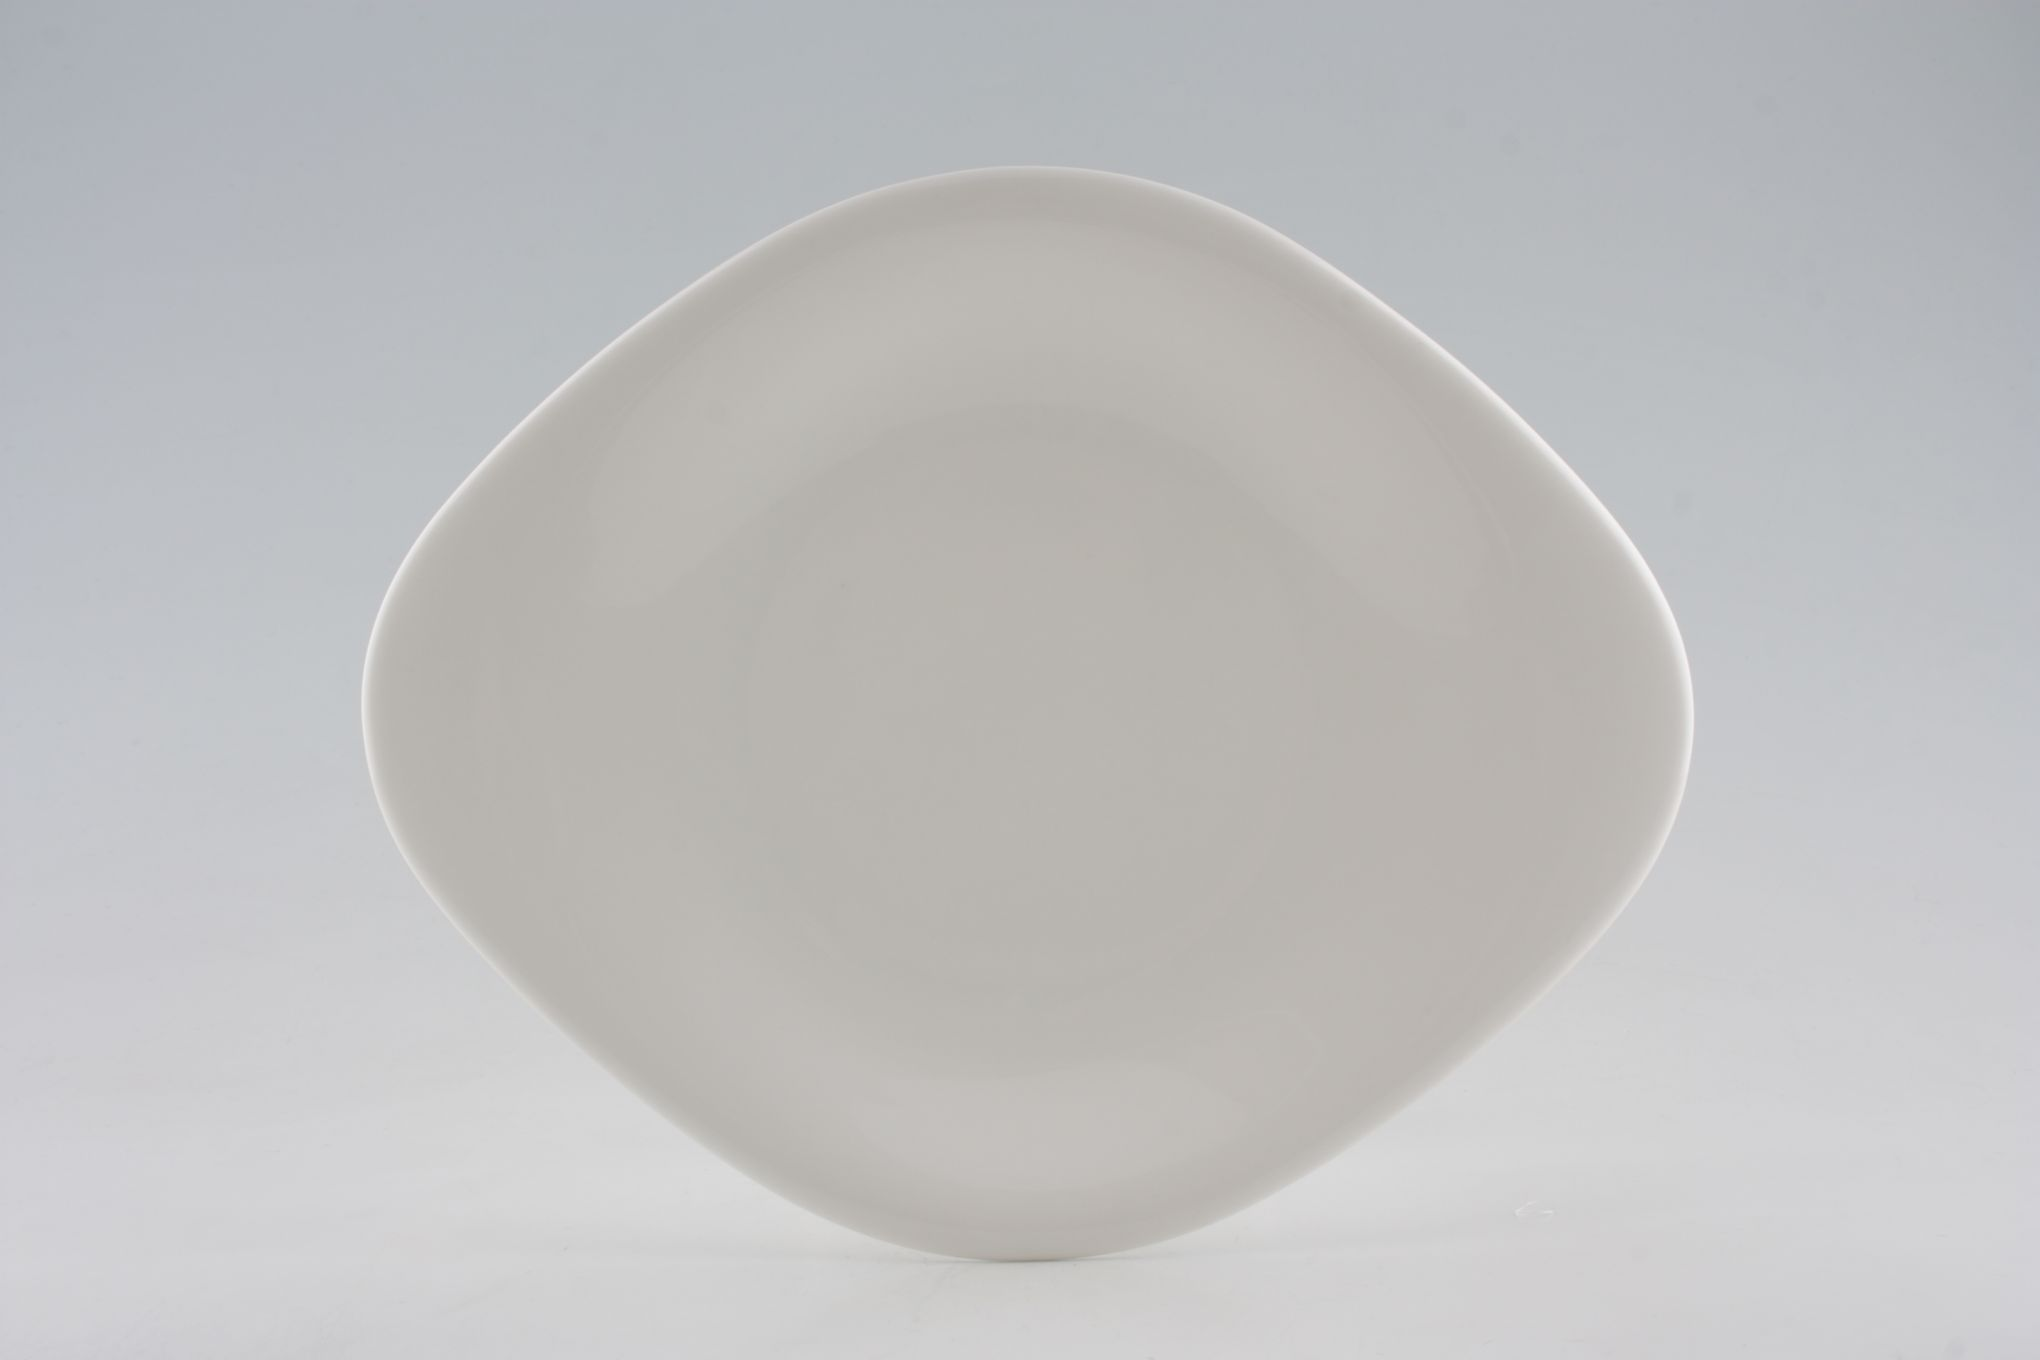 Villeroy & Boch Dune White Breakfast / Salad / Luncheon Plate Oval 26cm thumb 1